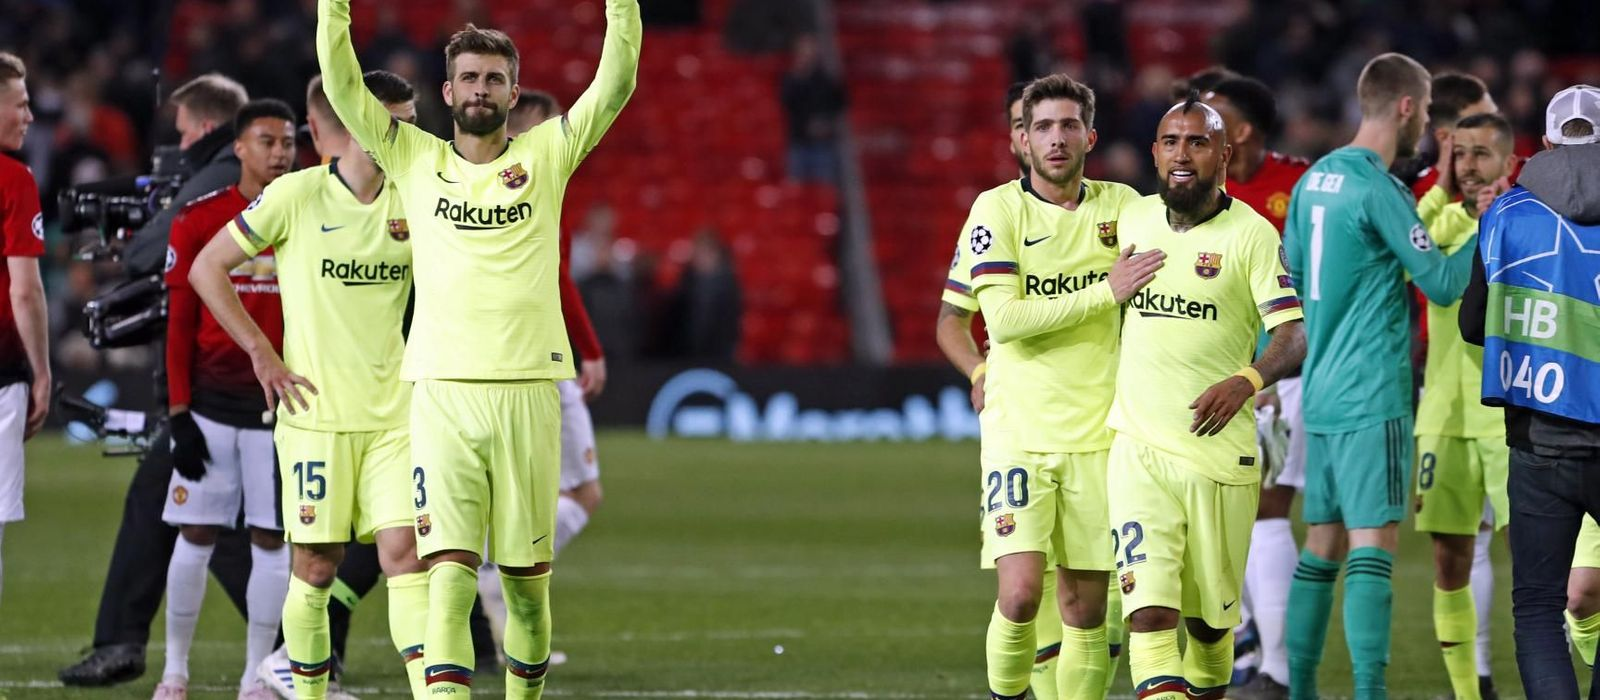 Piqué immense on his return to Old Trafford